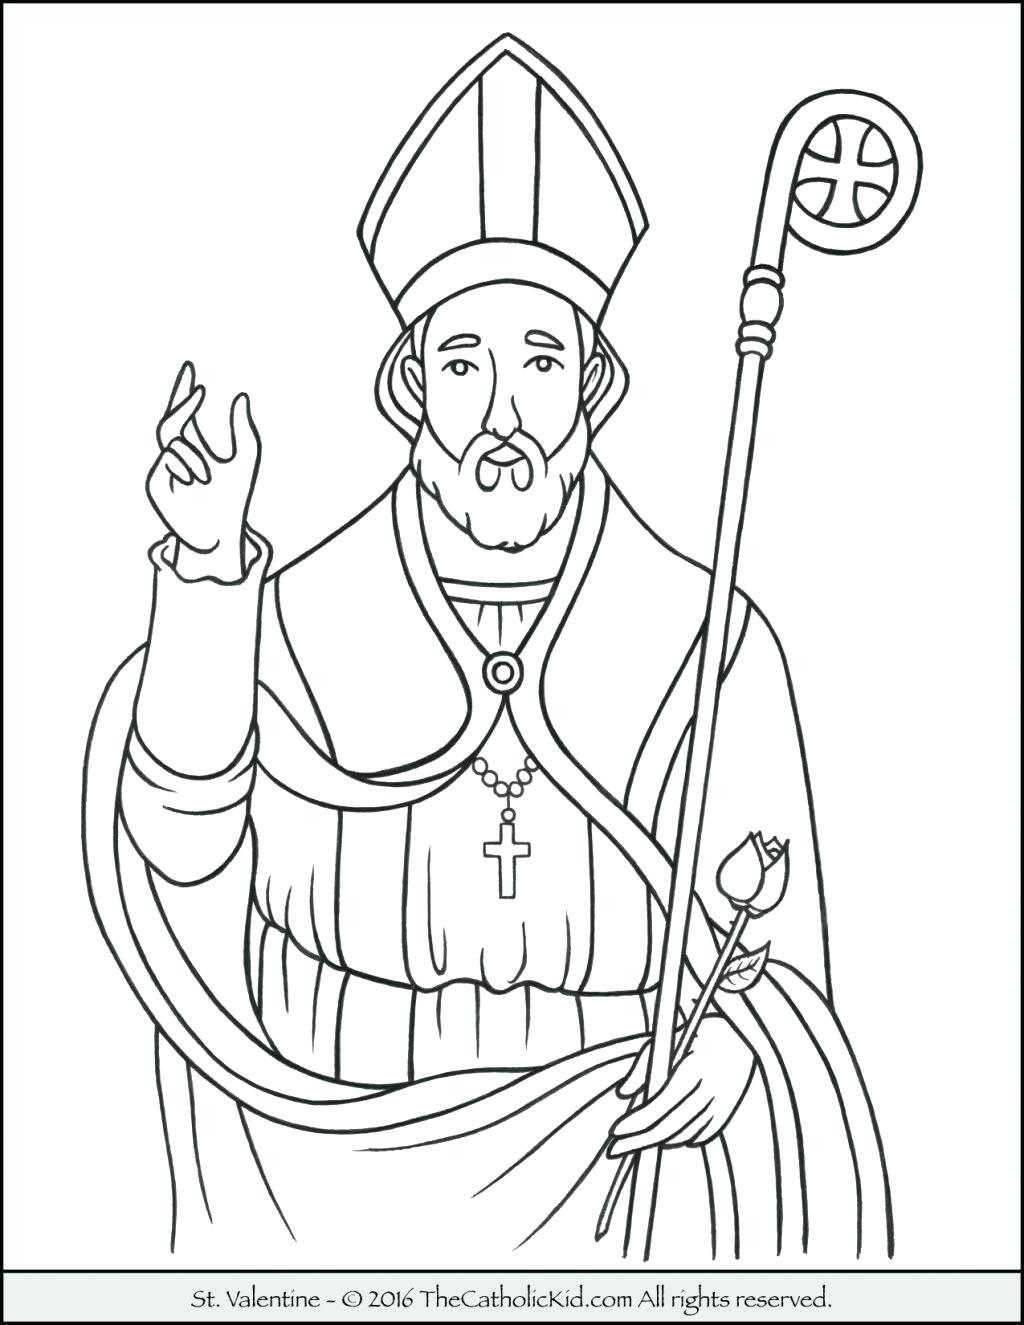 Catholic Church Drawing at GetDrawings.com | Free for personal use ...